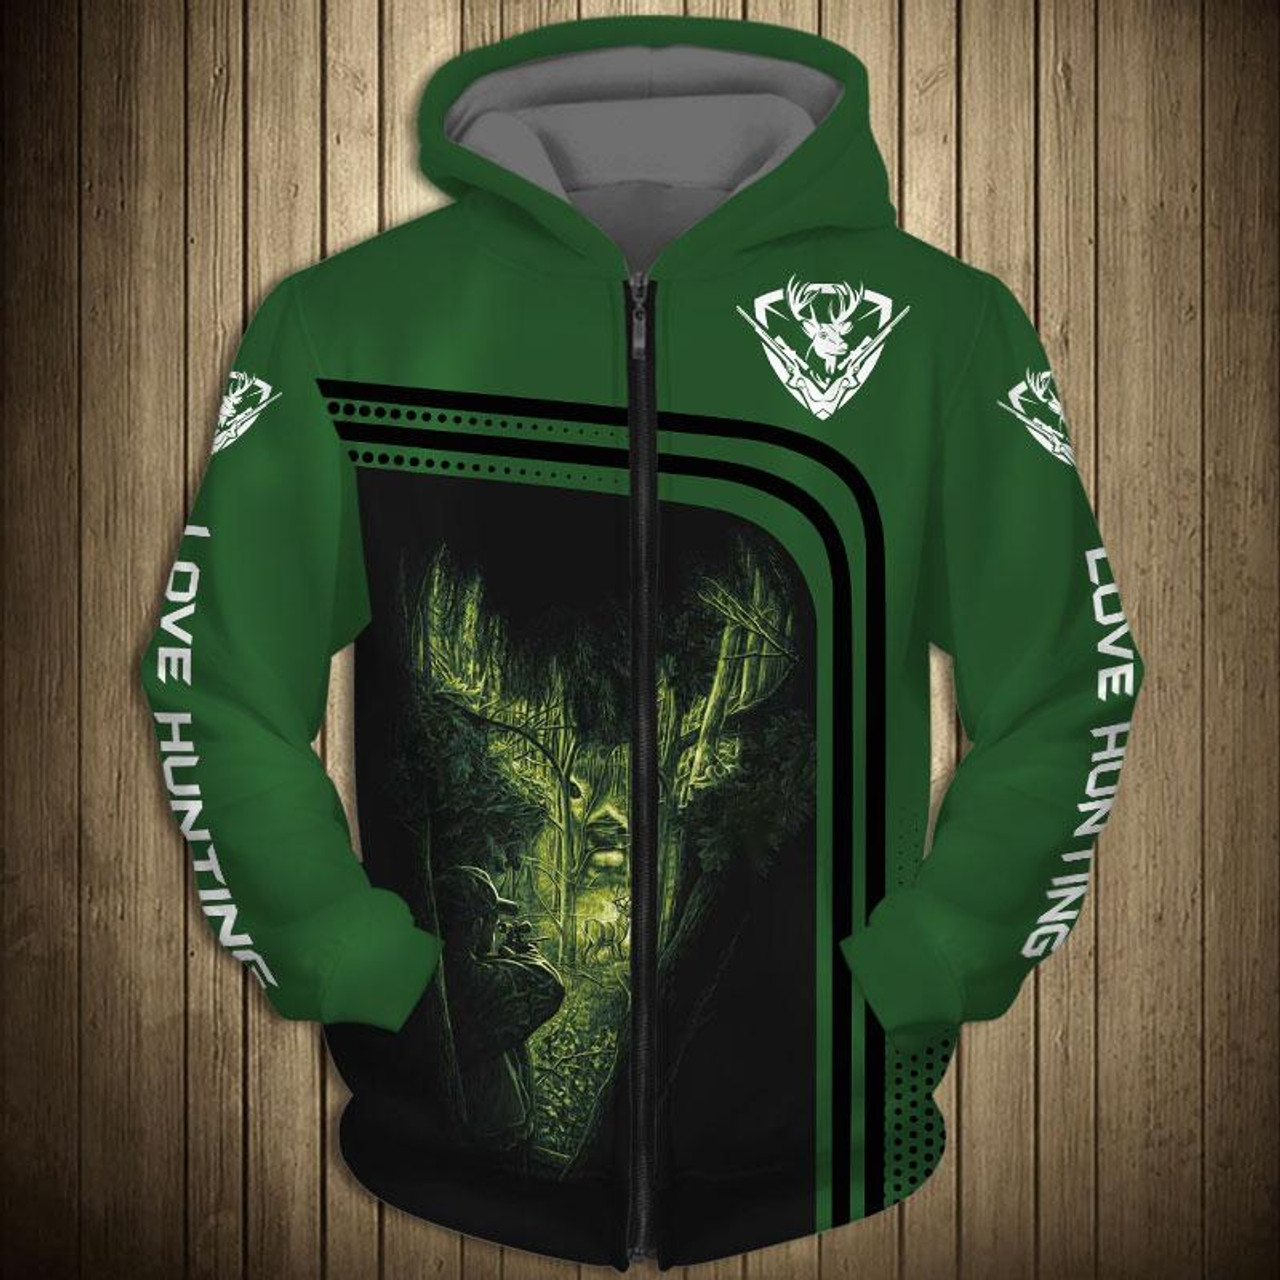 3abf3b9c **(OFFICIAL-BUCK-HUNTING-ZIPPERED-HOODIES/3-D-CUSTOM-DETAILED-GRAPHIC- PRINTED/DOUBLE-SIDED-ALL-OVER-PRINTED-DESIGN/LOVE-HUNTING-DOWN-SLEEVES ...